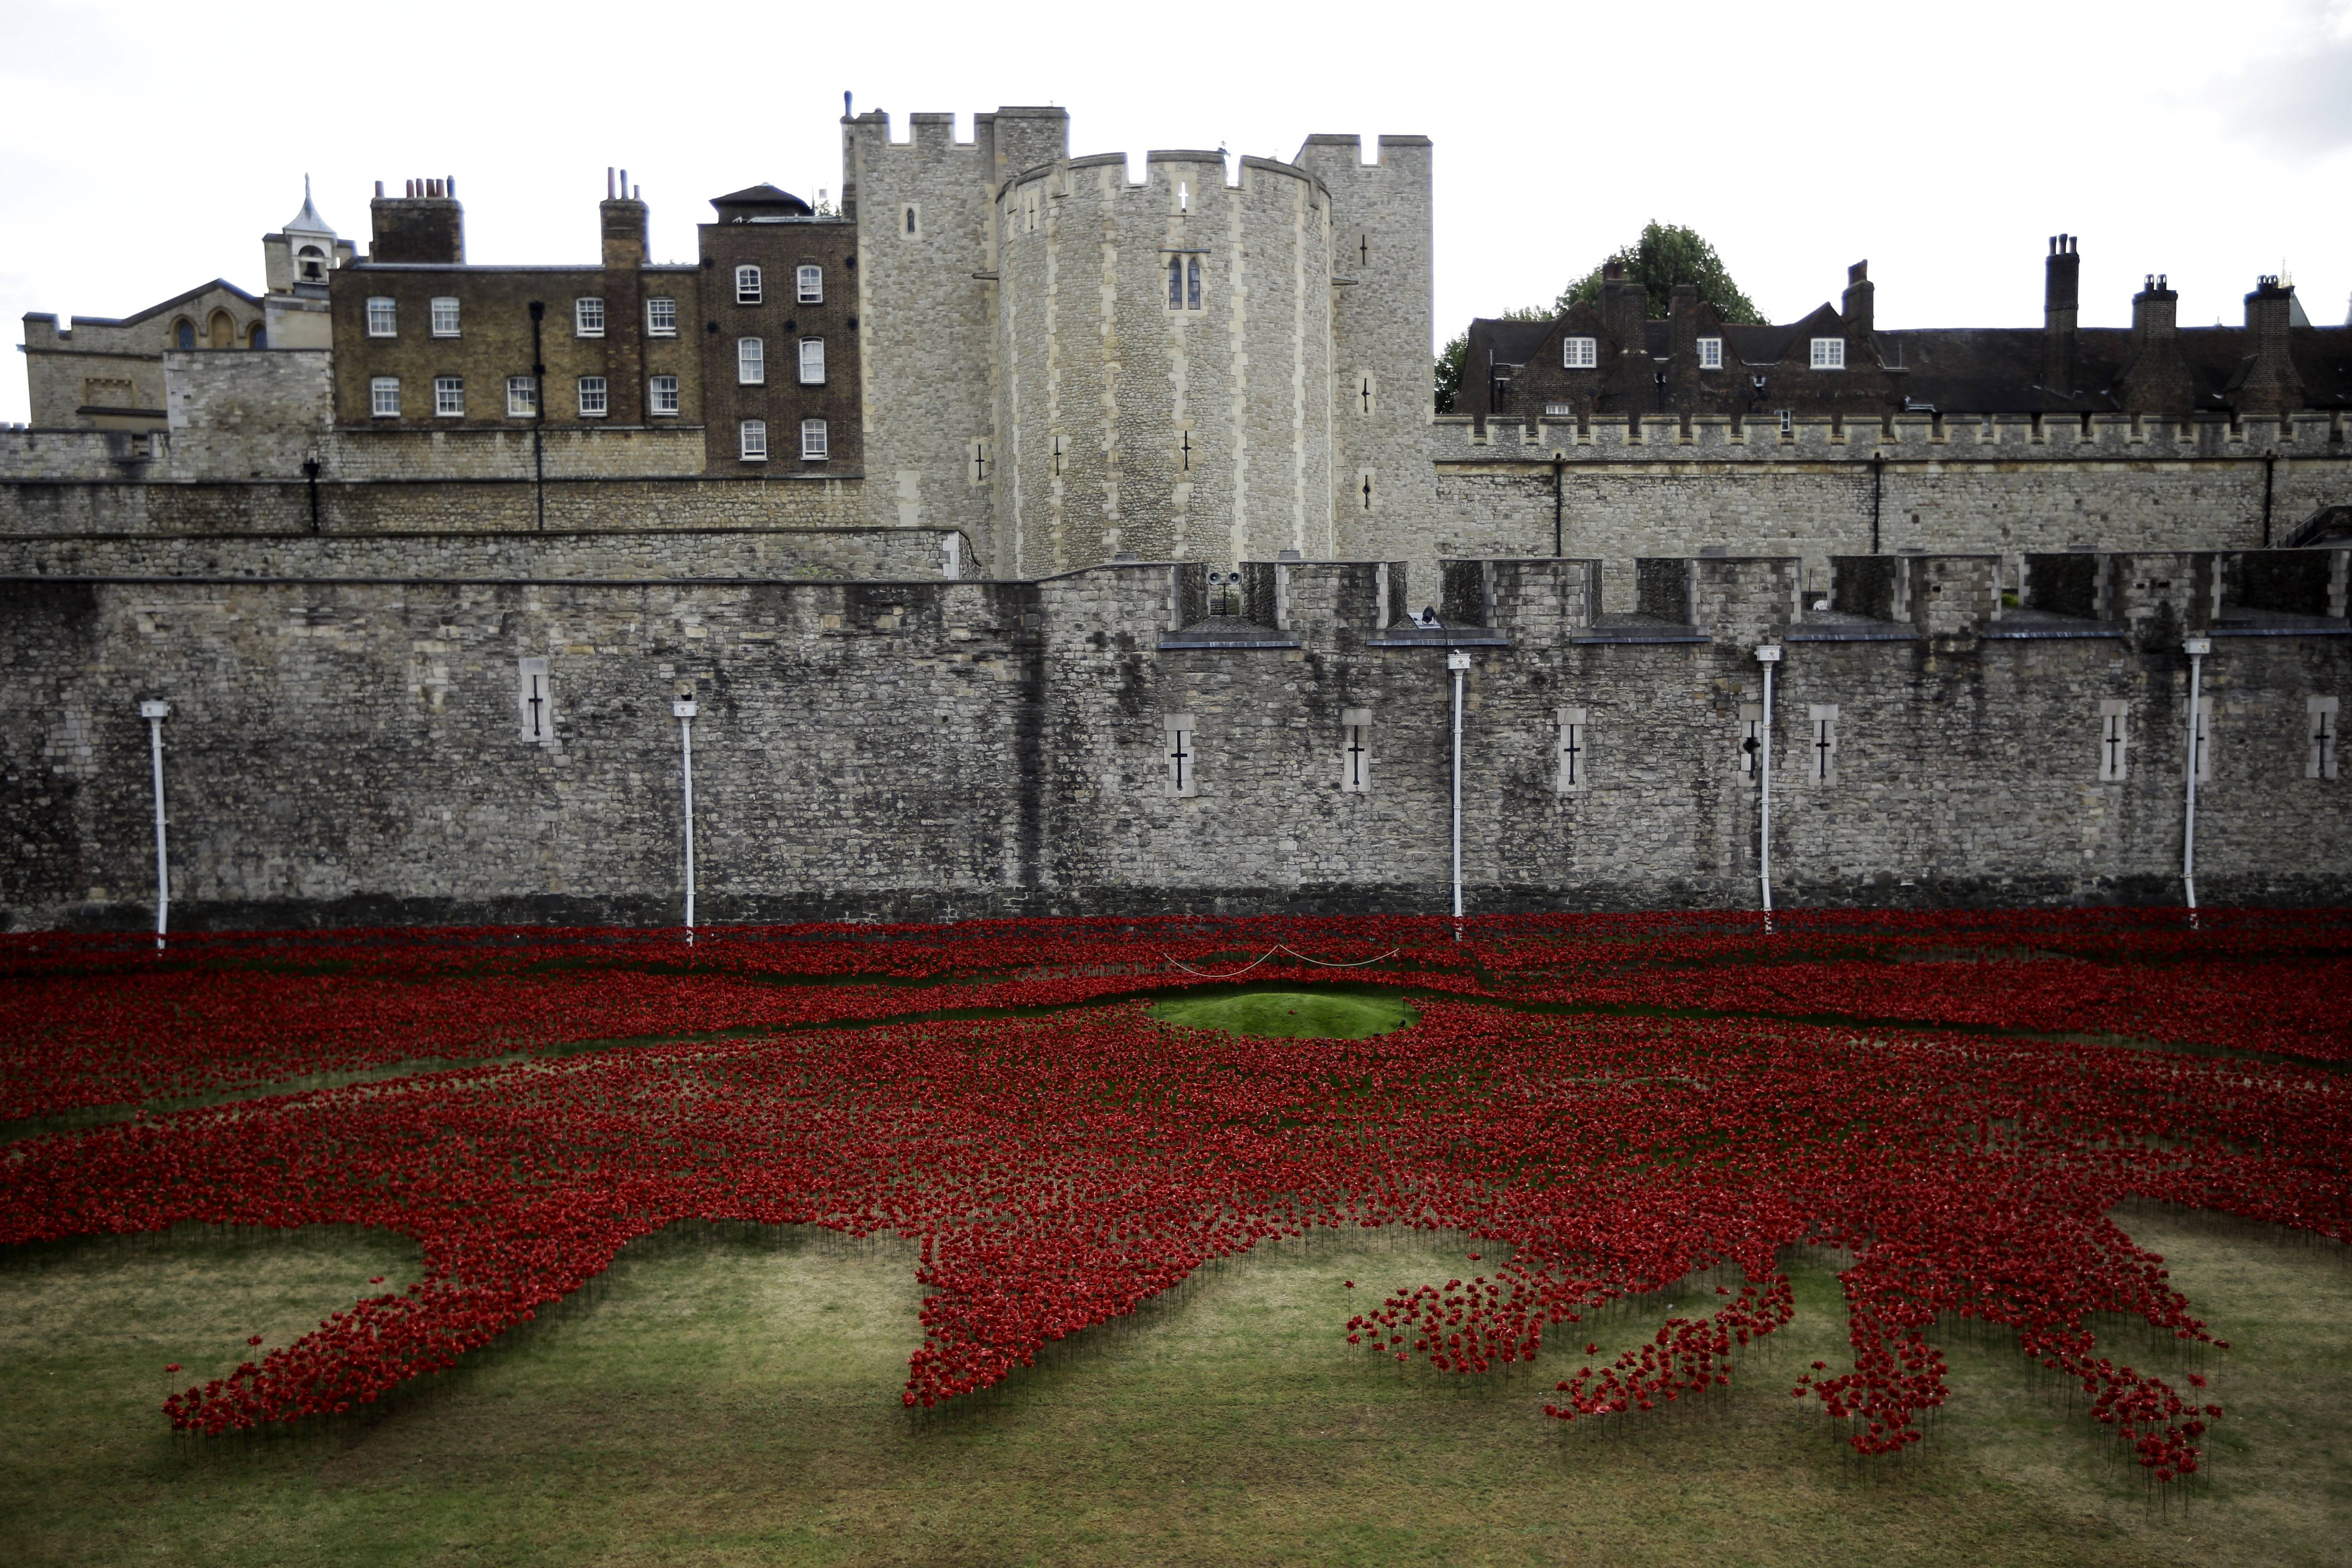 "Ceramic poppies form part of an art installation laid out in the dry moat of the Tower of London in London. The installation of 888,246 ceramic poppies by ceramic artist Paul Cummins entitled ""Blood Swept Lands and Seas of Read"" was unveiled Tuesday to mark the centenary of World War I, with the final one being planted on Armistice Day on November 11. Each poppy represents a British military fatality from World War I."